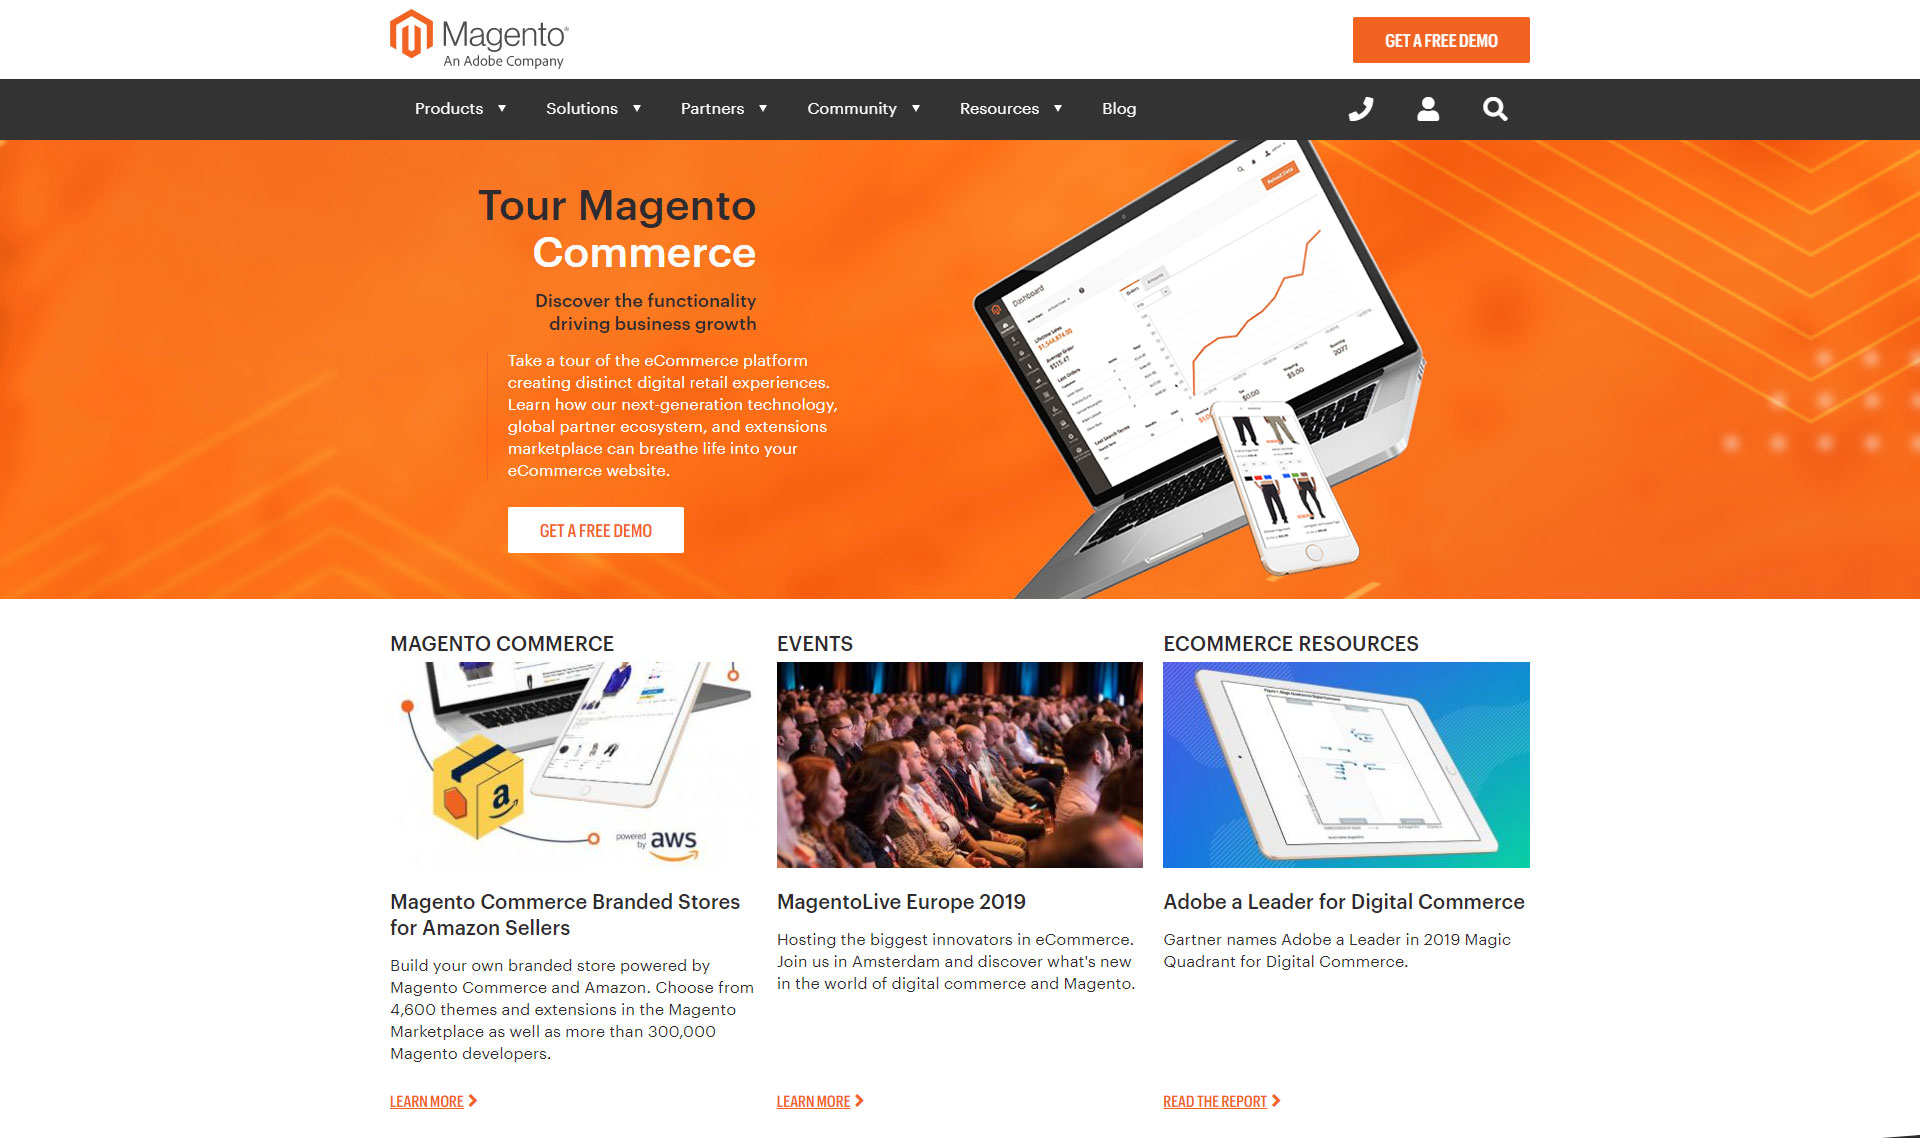 Magento - Best Free Content Management System